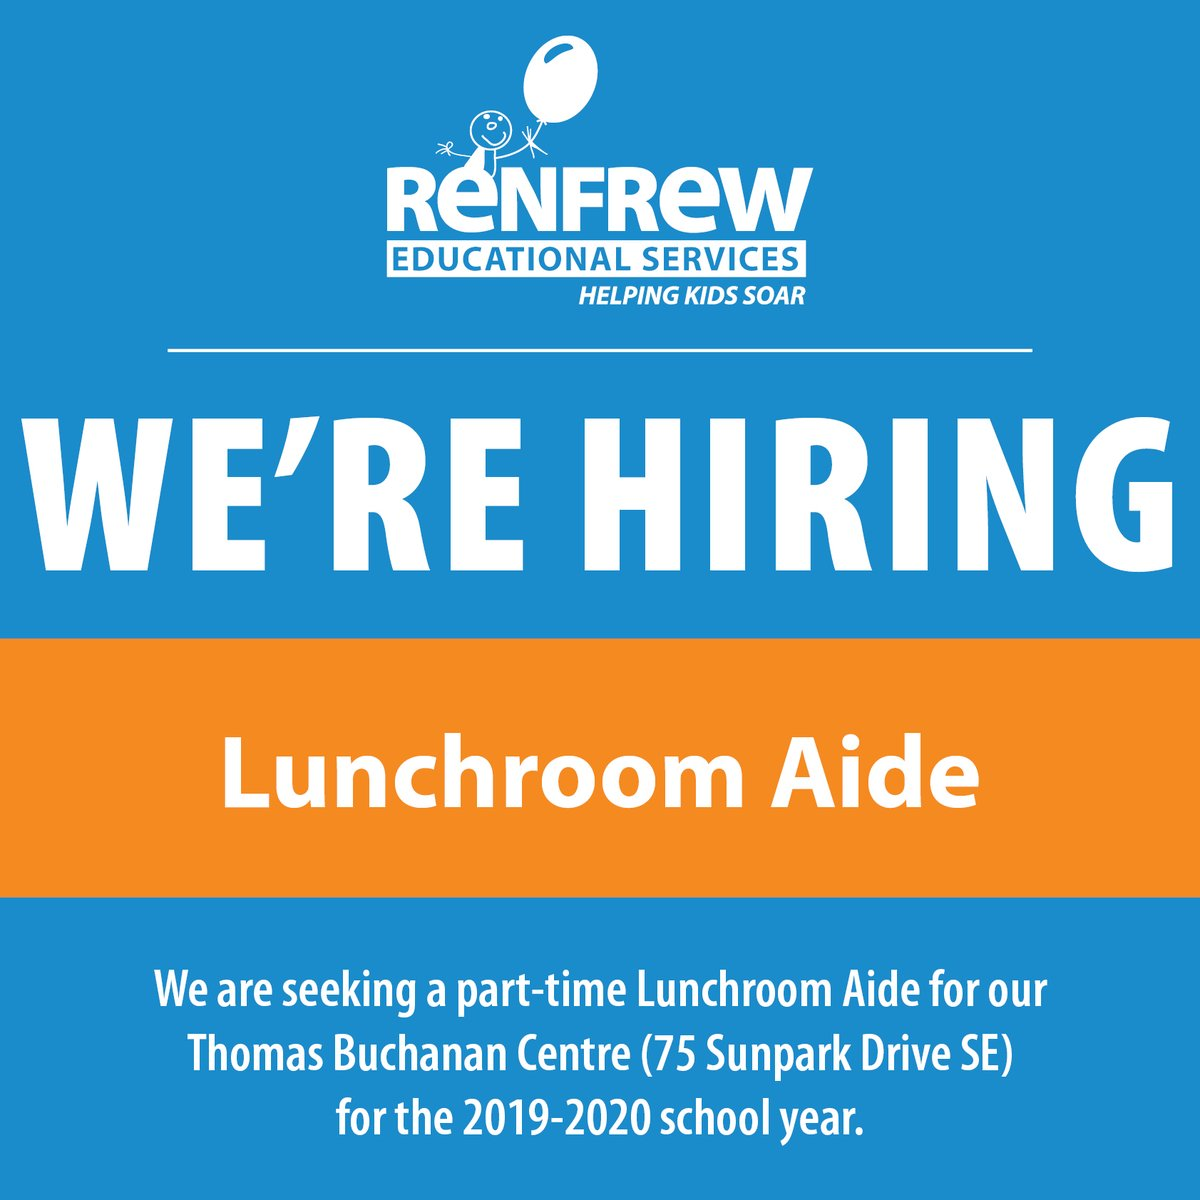 Looking for a fun and engaging #career without a full-time commitment? We're seeking a part-time Lunchroom Aide for our Thomas Buchanan Centre (75 Sunpark Drive SE). Learn more and apply here:  #RESCalgary #YYCJobs #SpecialEducation